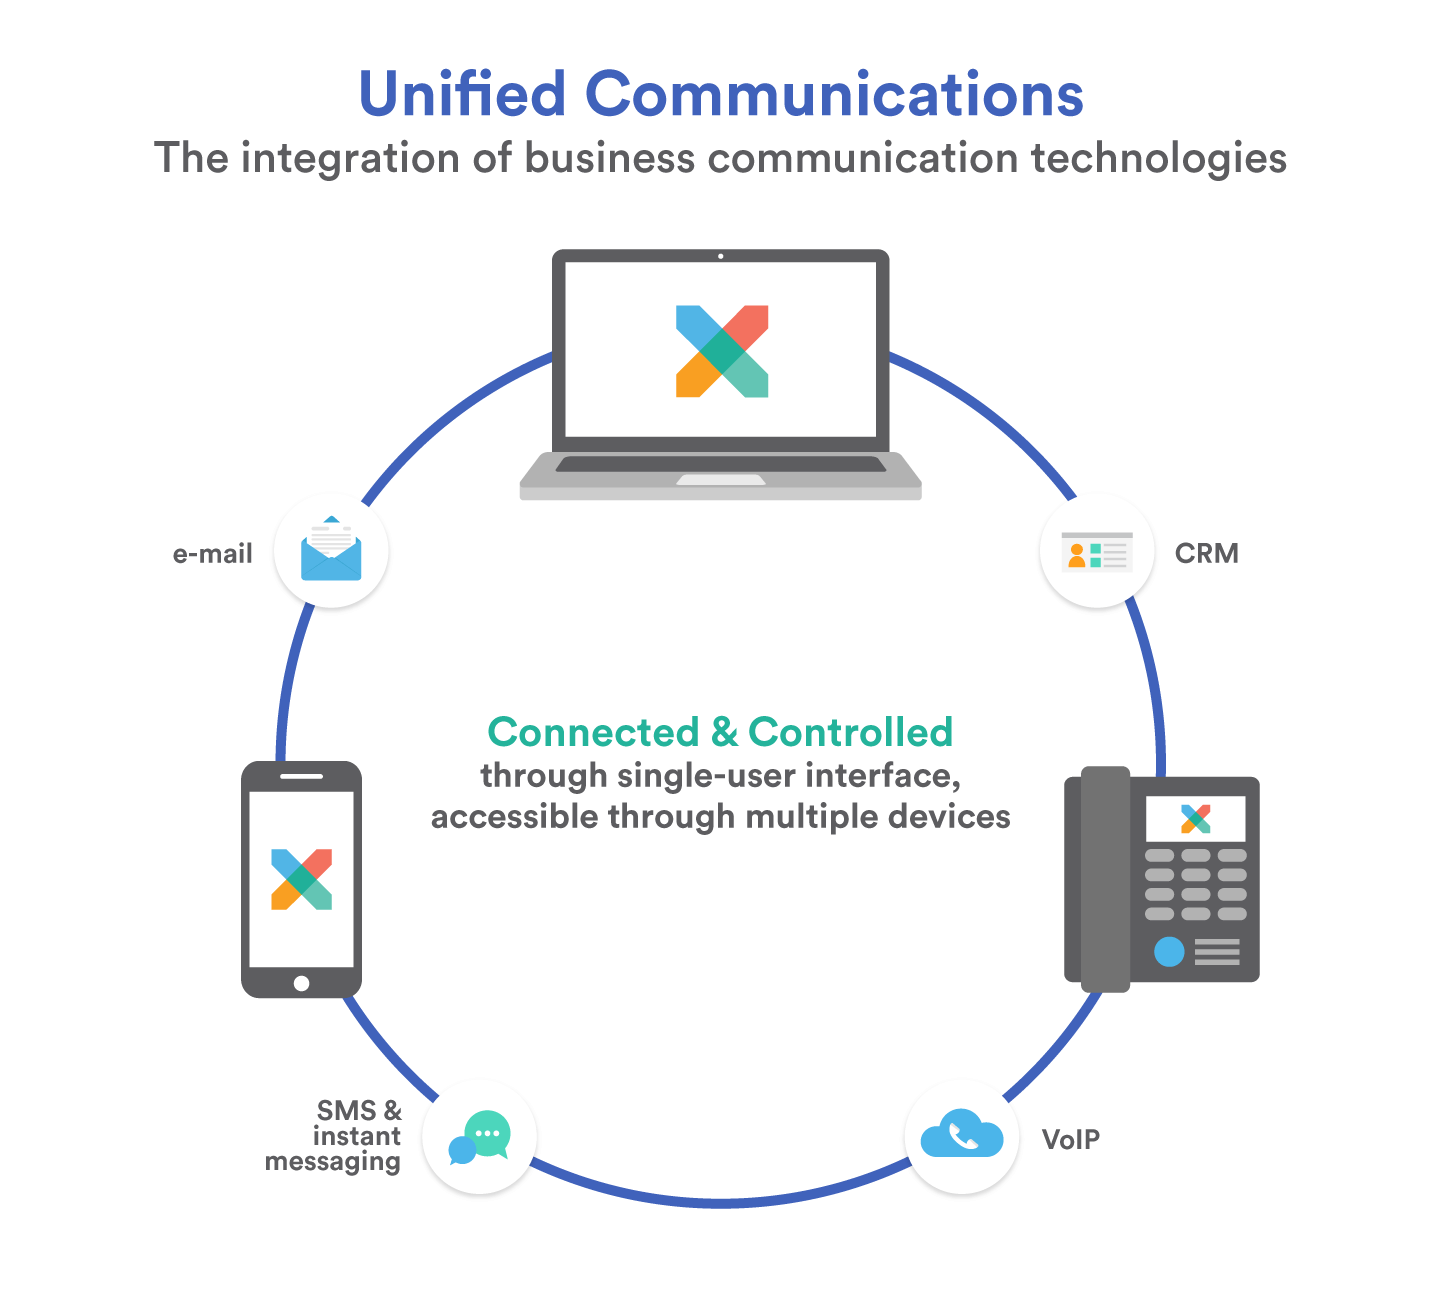 The technologies and devices involved in unified communications